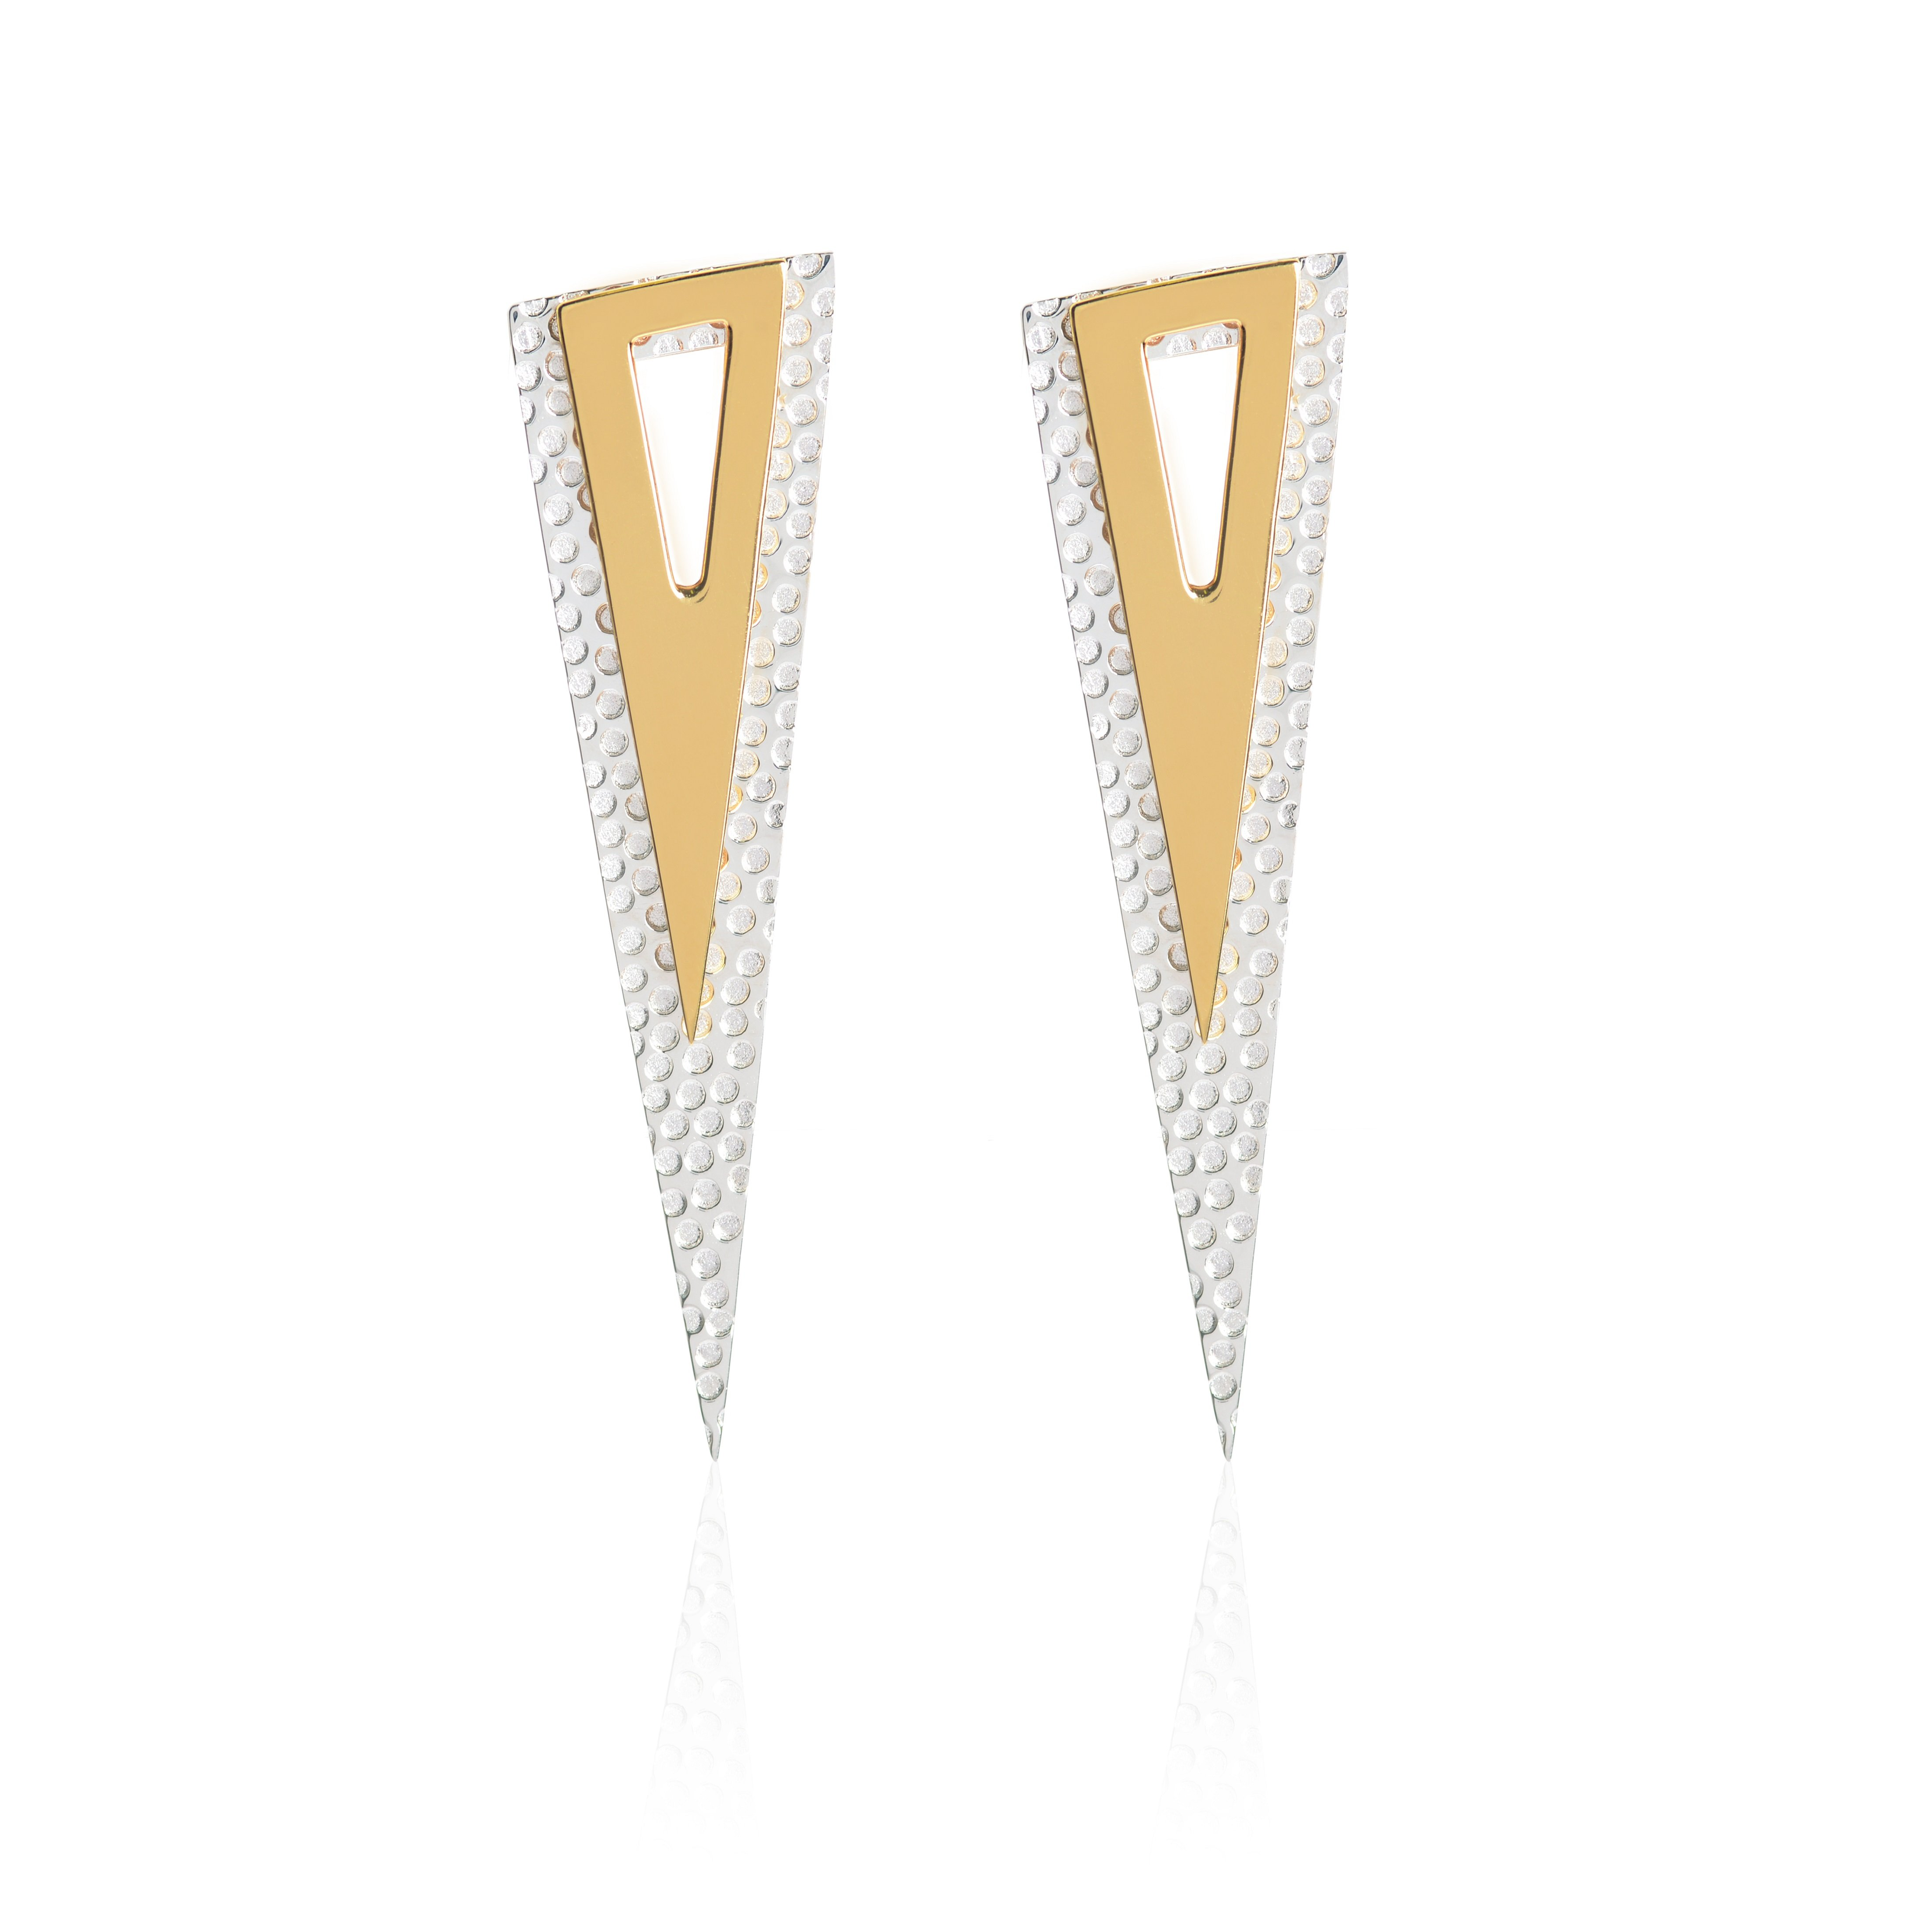 Who Says We Can't Change? Spike Earrings (5 in 1), Gold and Silver by Sally Lane Jewellery on curated-crowd.com